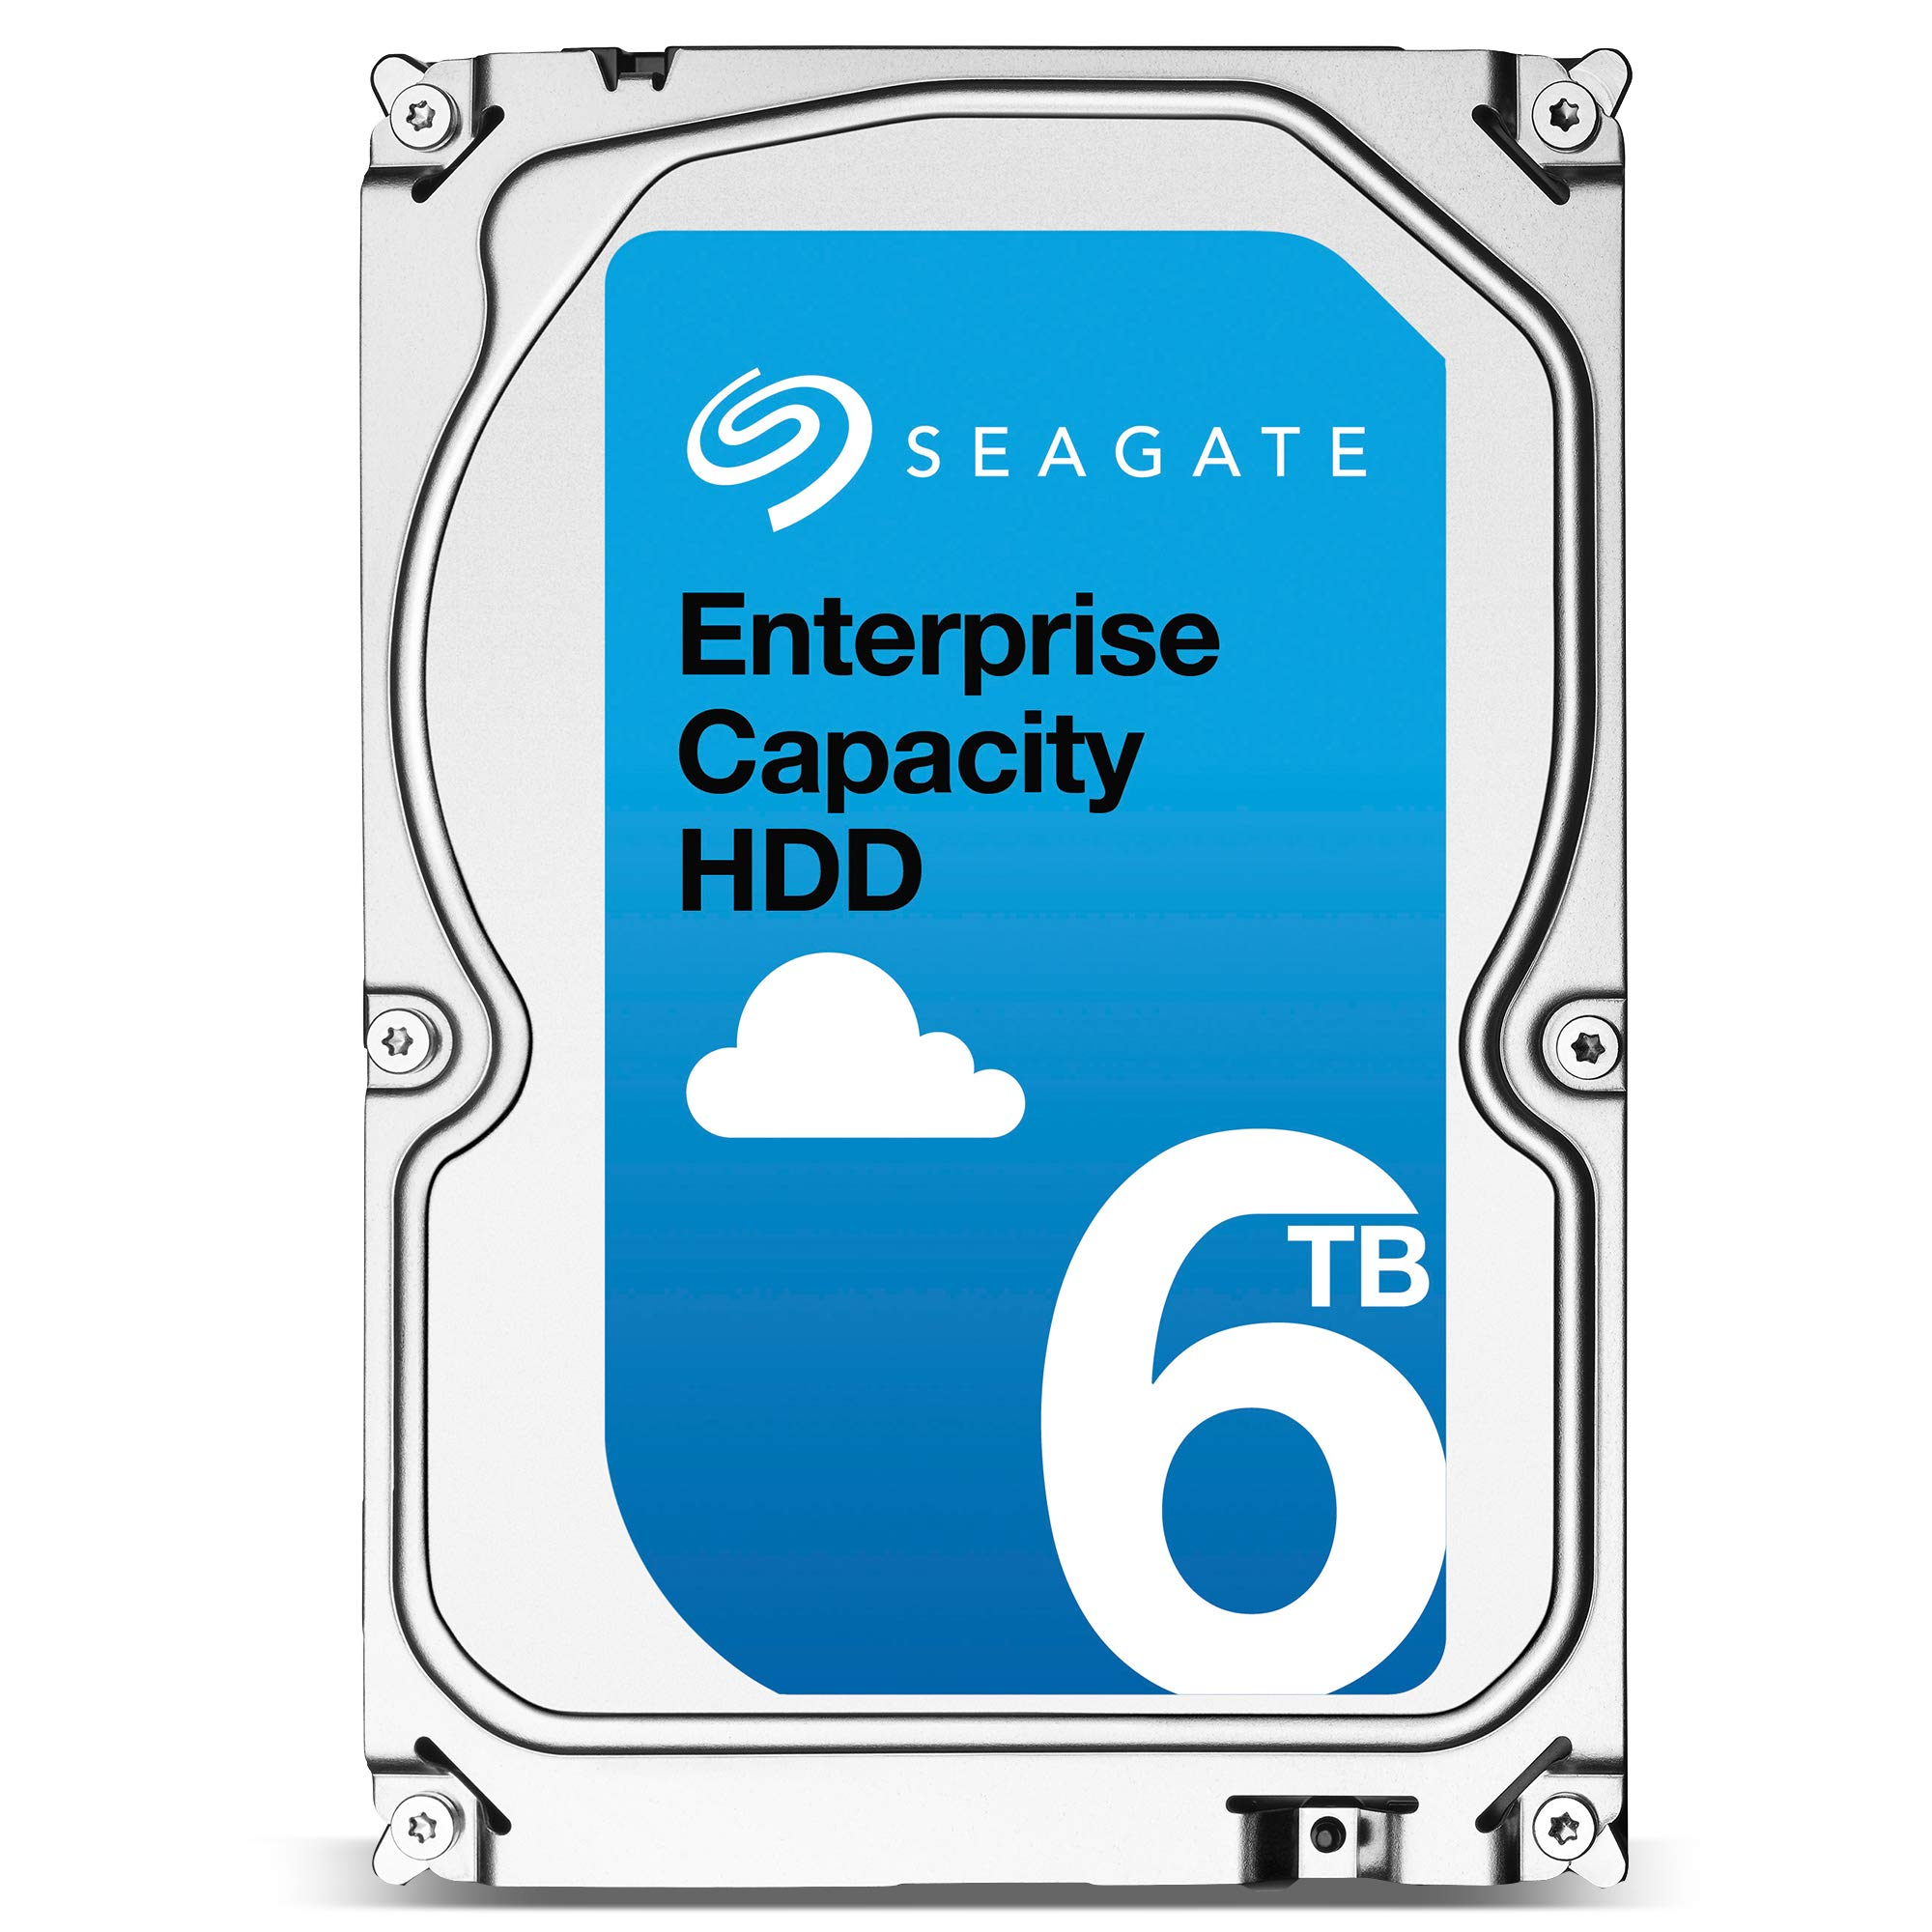 Seagate Enterprise Capacity 3.5 HDD| ST6000NM0034 | 6TB 7.2K RPM SAS 12Gb/s 128MB Cache 3.5' | 512n | Enterprise Hard Disk Drive for Hyperscale Applications (Renewed) by Seagate (Image #1)